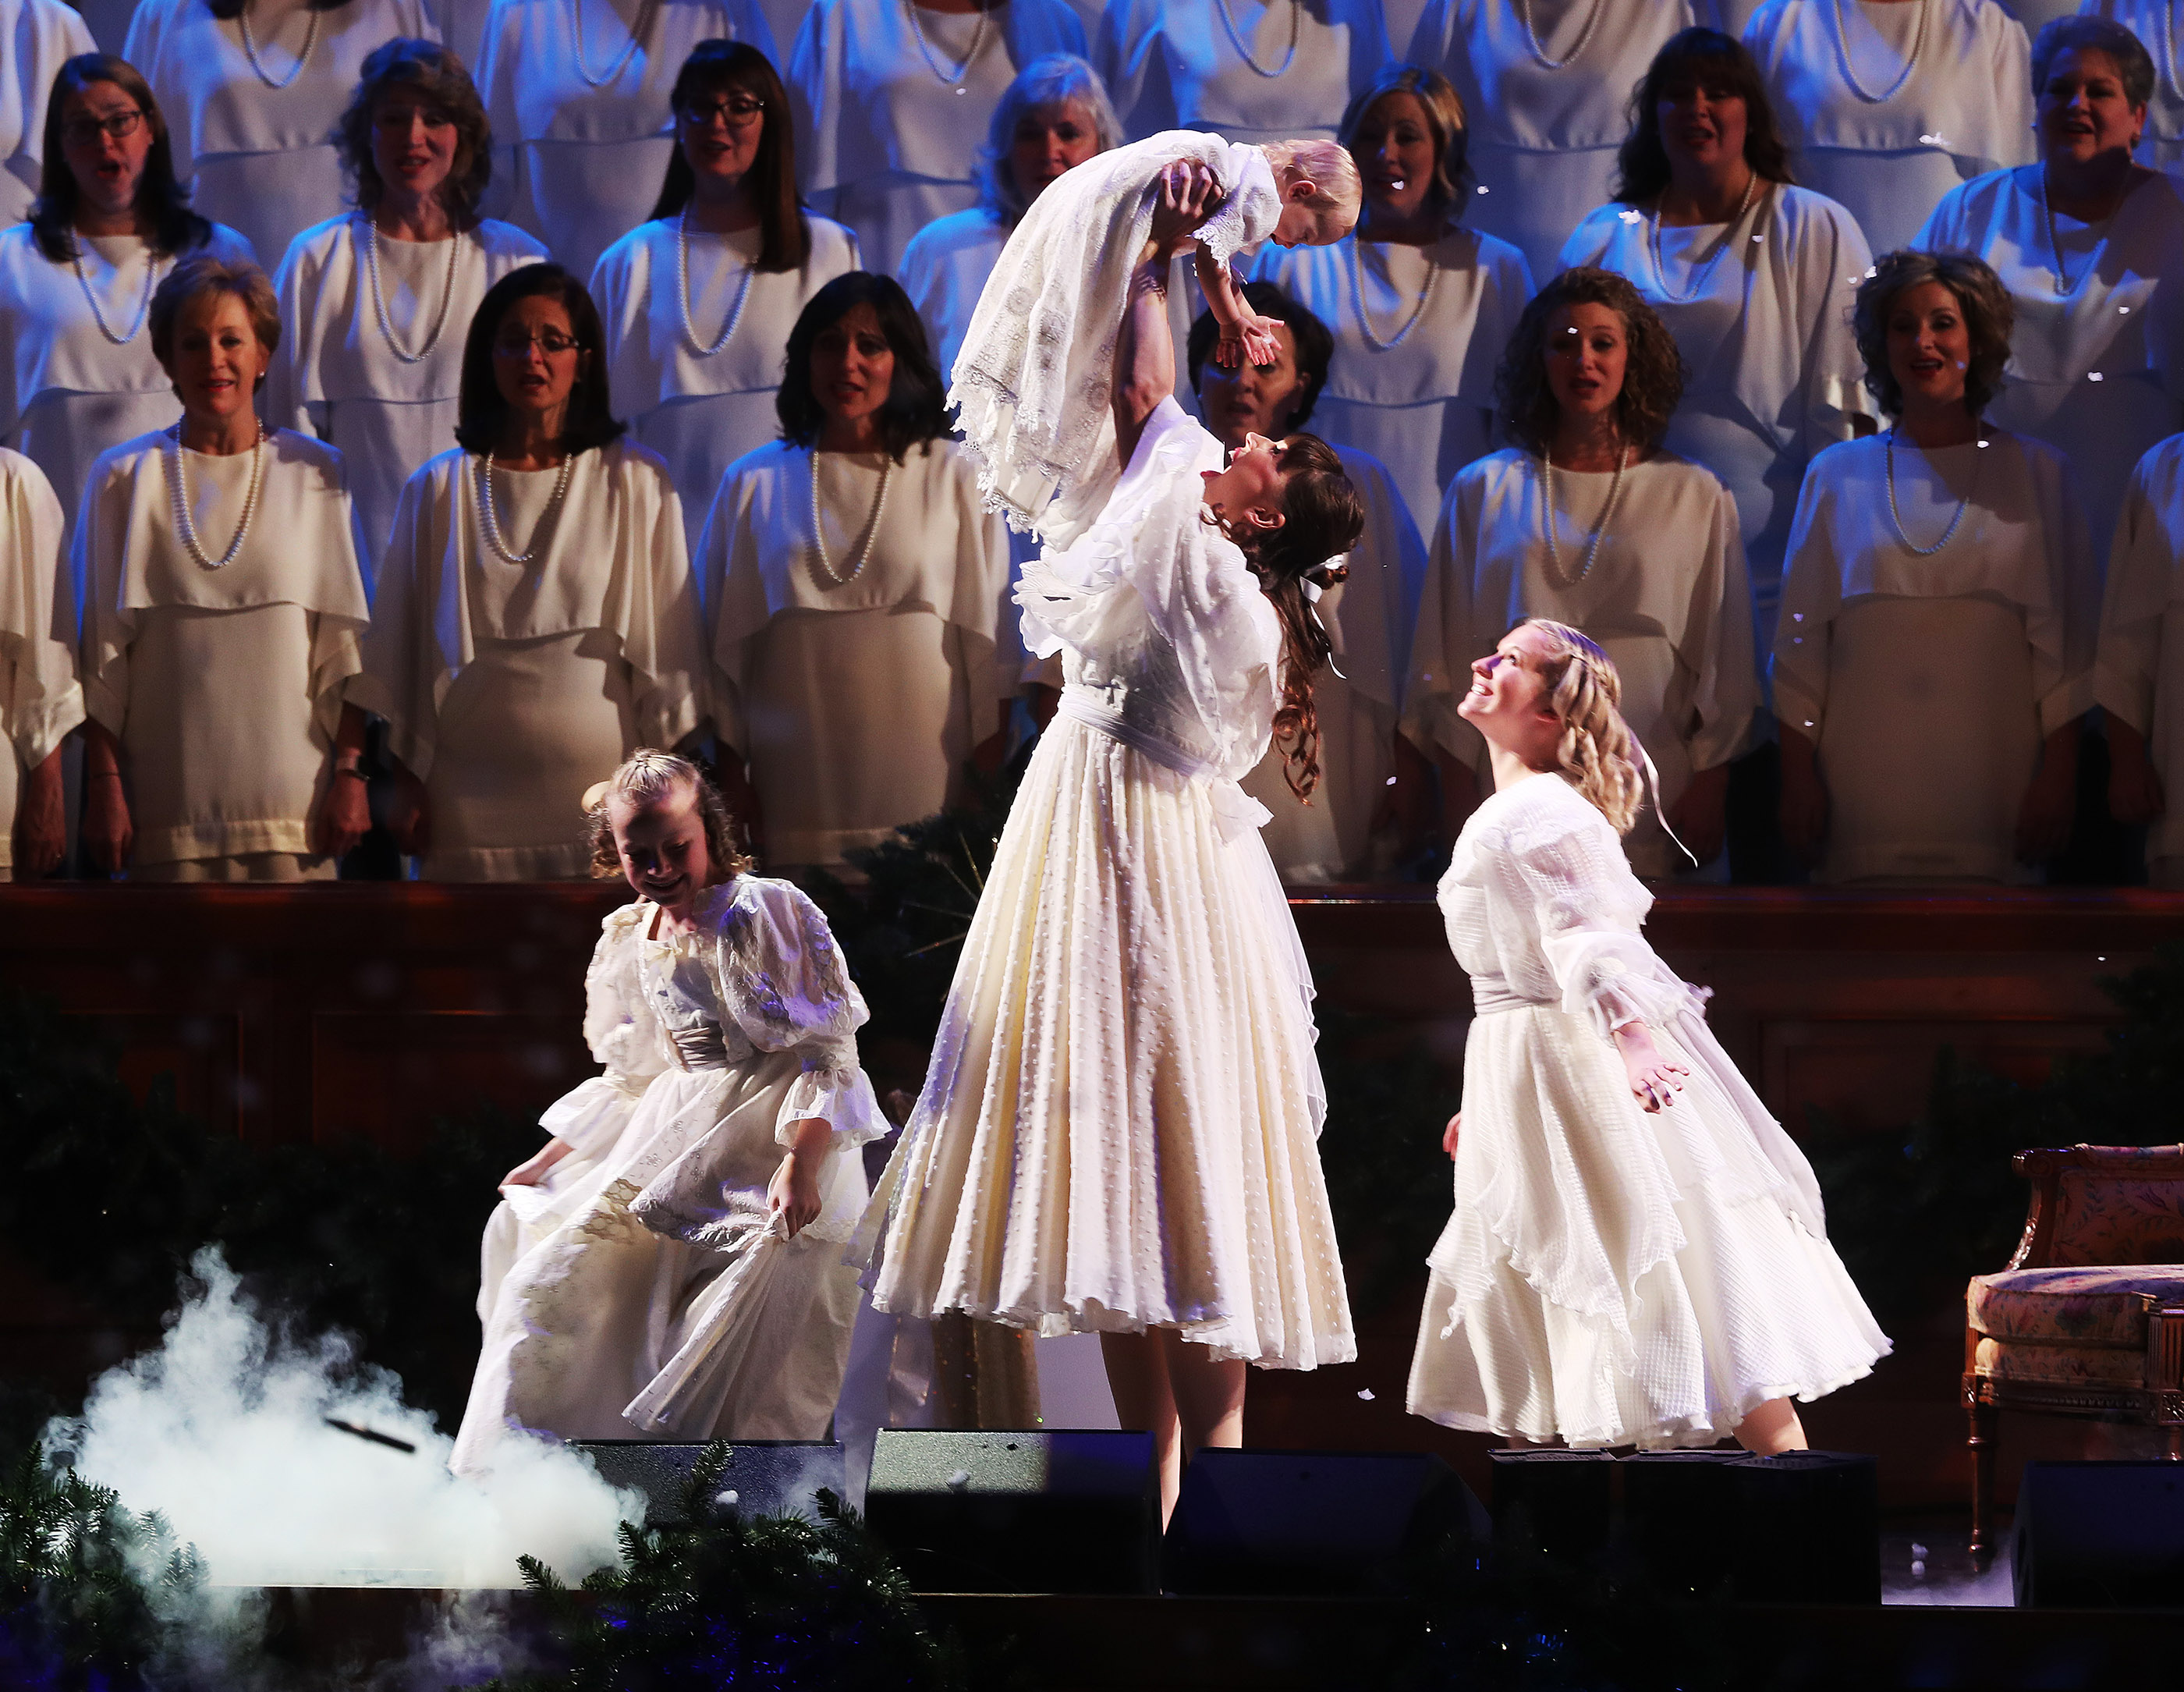 Performers accompany the Tabernacle Choir at Temple Square during their opening Christmas concert at the Conference Center at the Conference Center in Salt Lake City on Thursday, Dec. 13, 2018.